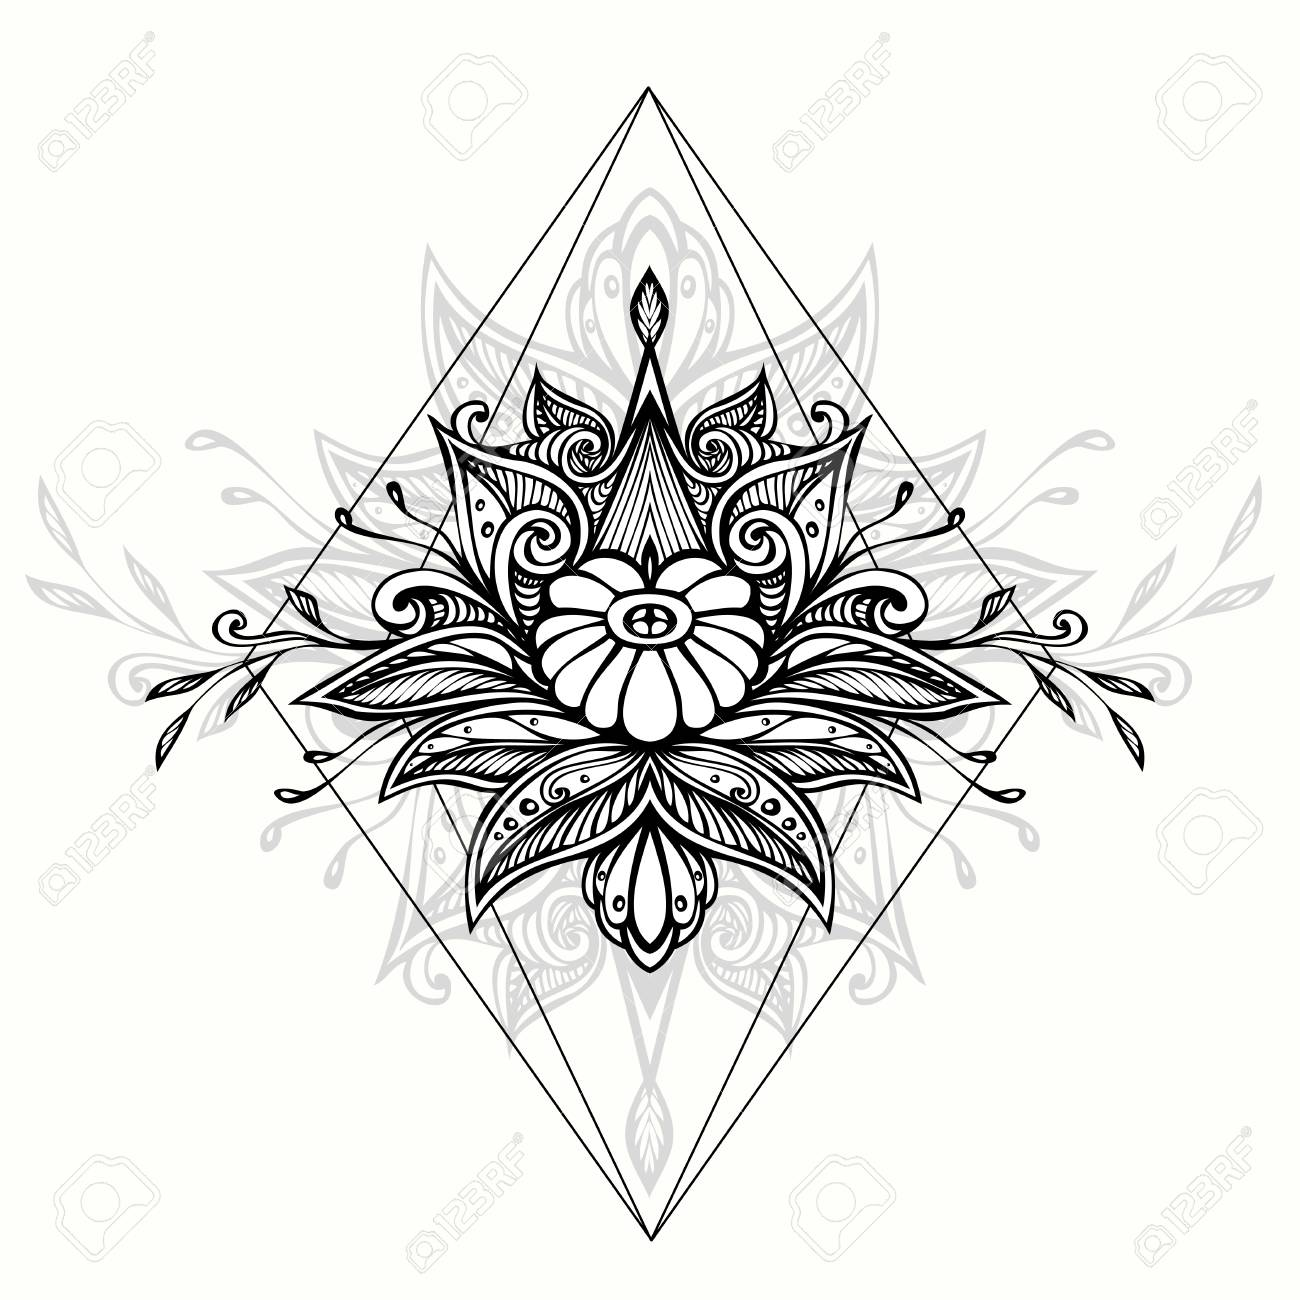 Abstract doodle symbol in boho Indian teen for coloring page..